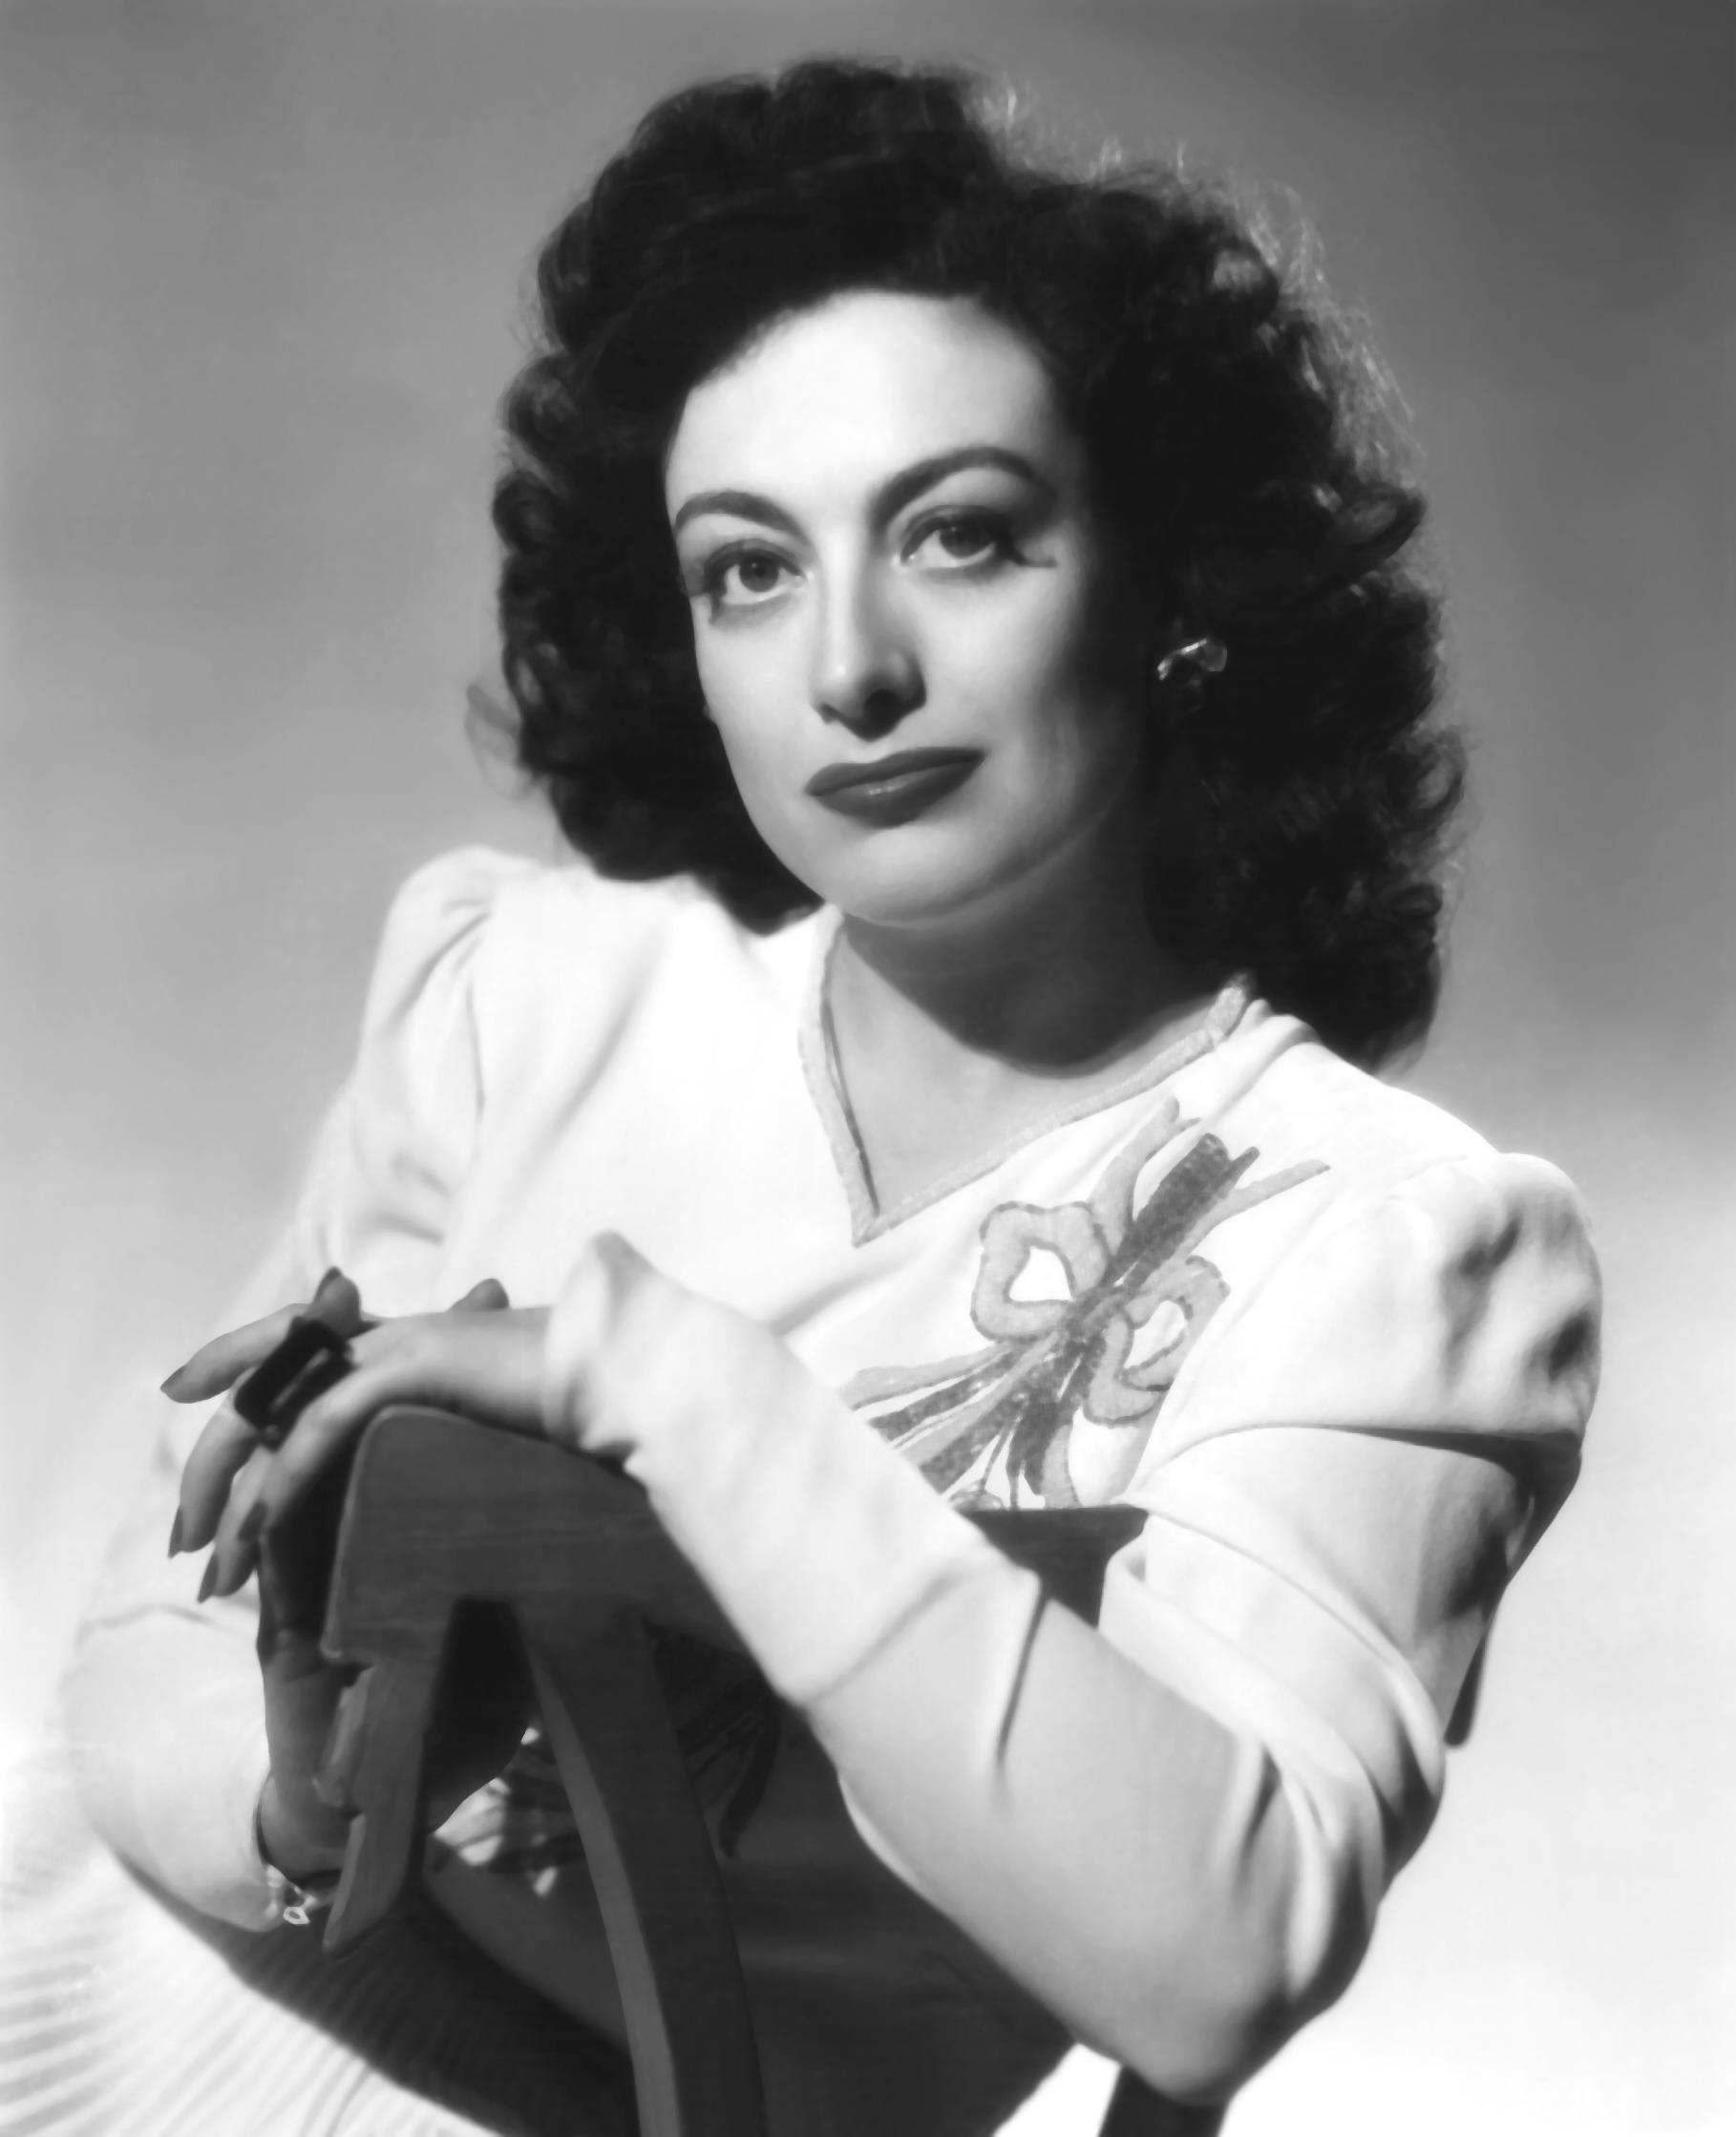 joan crawford childjoan crawford blue oyster cult, joan crawford young, joan crawford mildred pierce, joan crawford old, joan crawford gif, joan crawford quotes, joan crawford 1976, joan crawford 1960, joan crawford skin care, joan crawford oscars, joan crawford clark gable, joan crawford and dorothy sebastian, joan crawford net worth, joan crawford child, joan crawford marriages, joan crawford barbara stanwyck, joan crawford brows, joan crawford actress, joan crawford 1962, joan crawford anita page